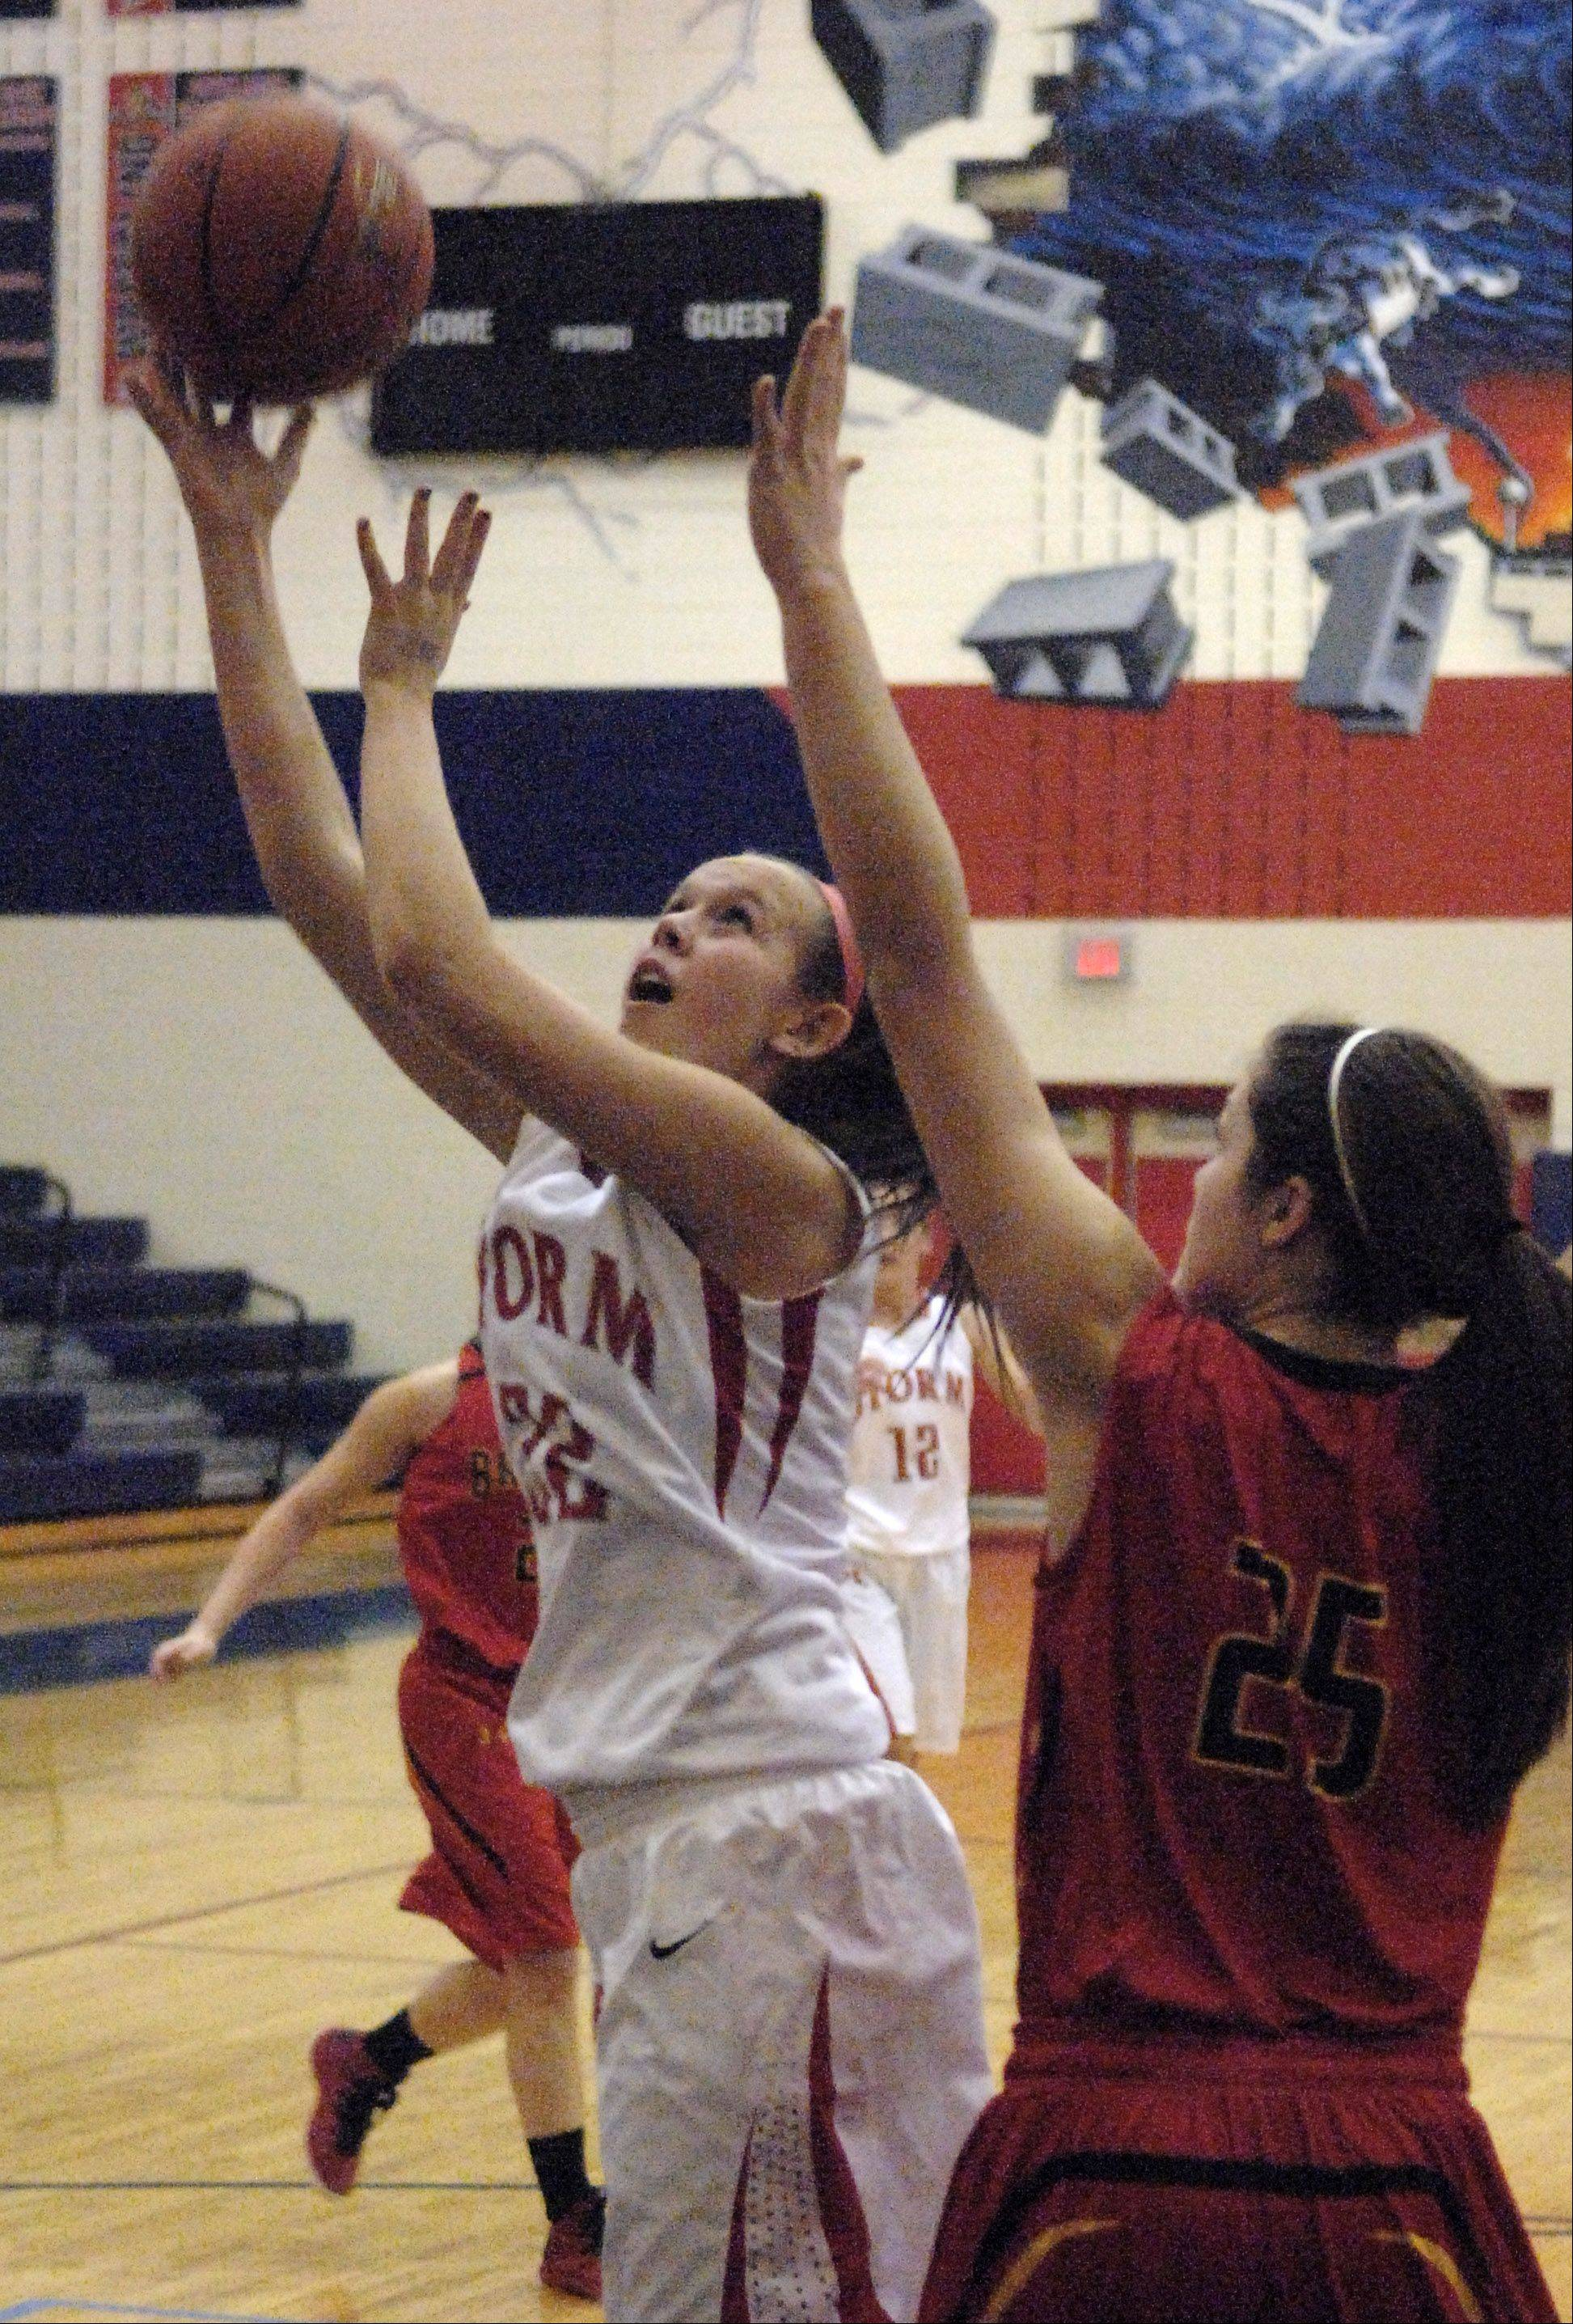 South Elgin's Laura McIntosh puts up a shot over Batavia's Hannah Frazier during Thursday's game in South Elgin.